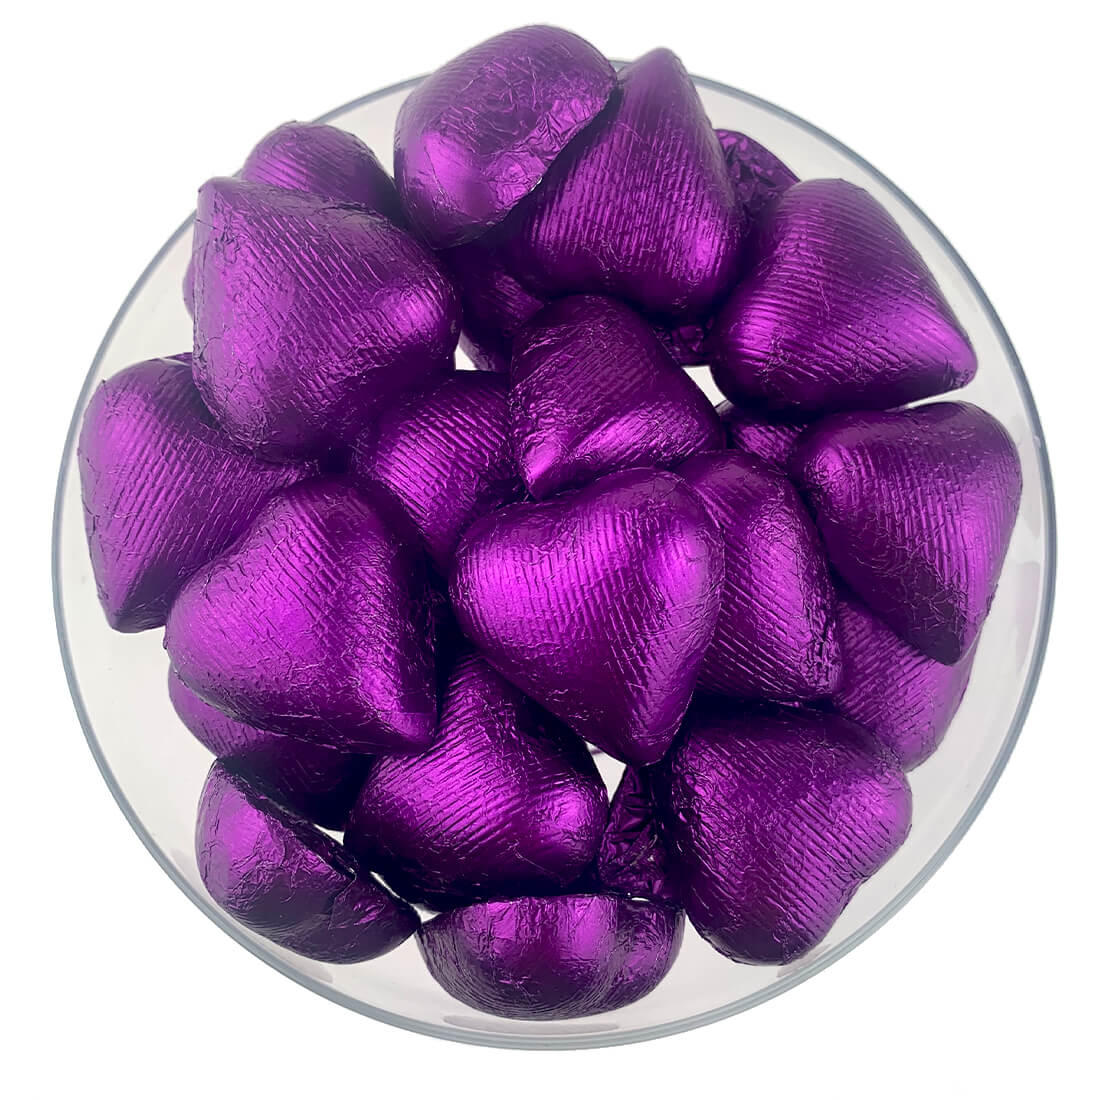 Purple Foiled Wrapped Chocolate Hearts 2lb Bag